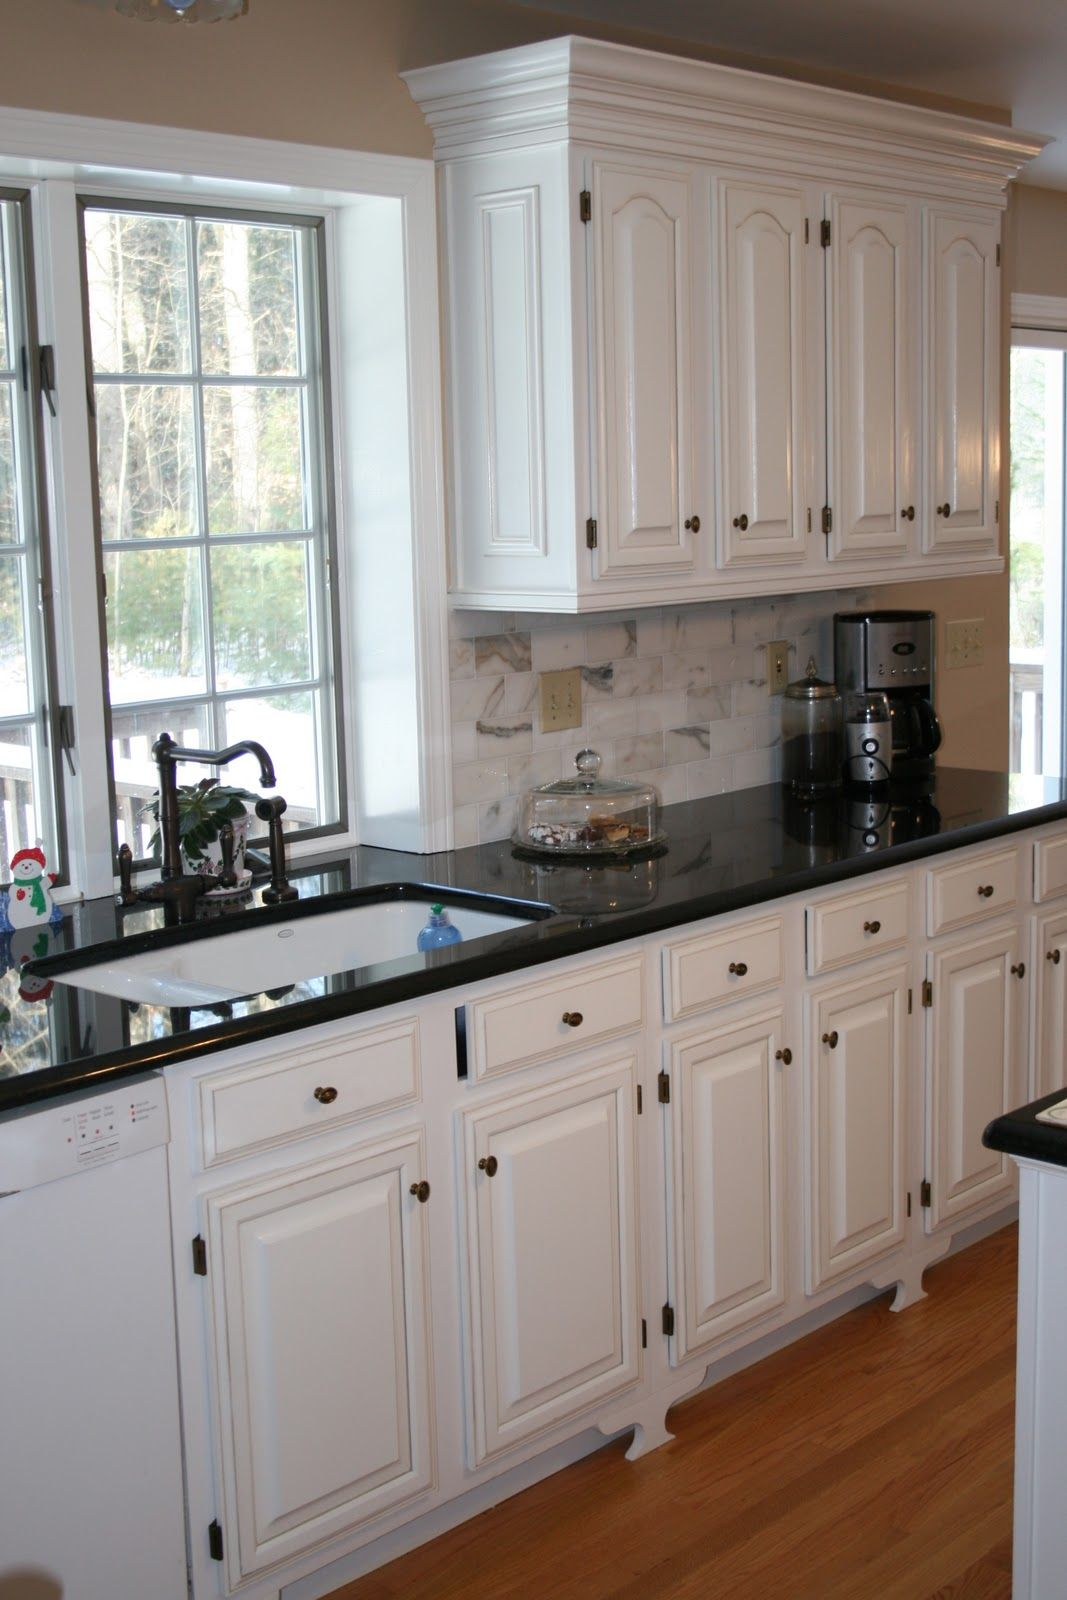 White Cabinets Black Countertops And That Faucet Black